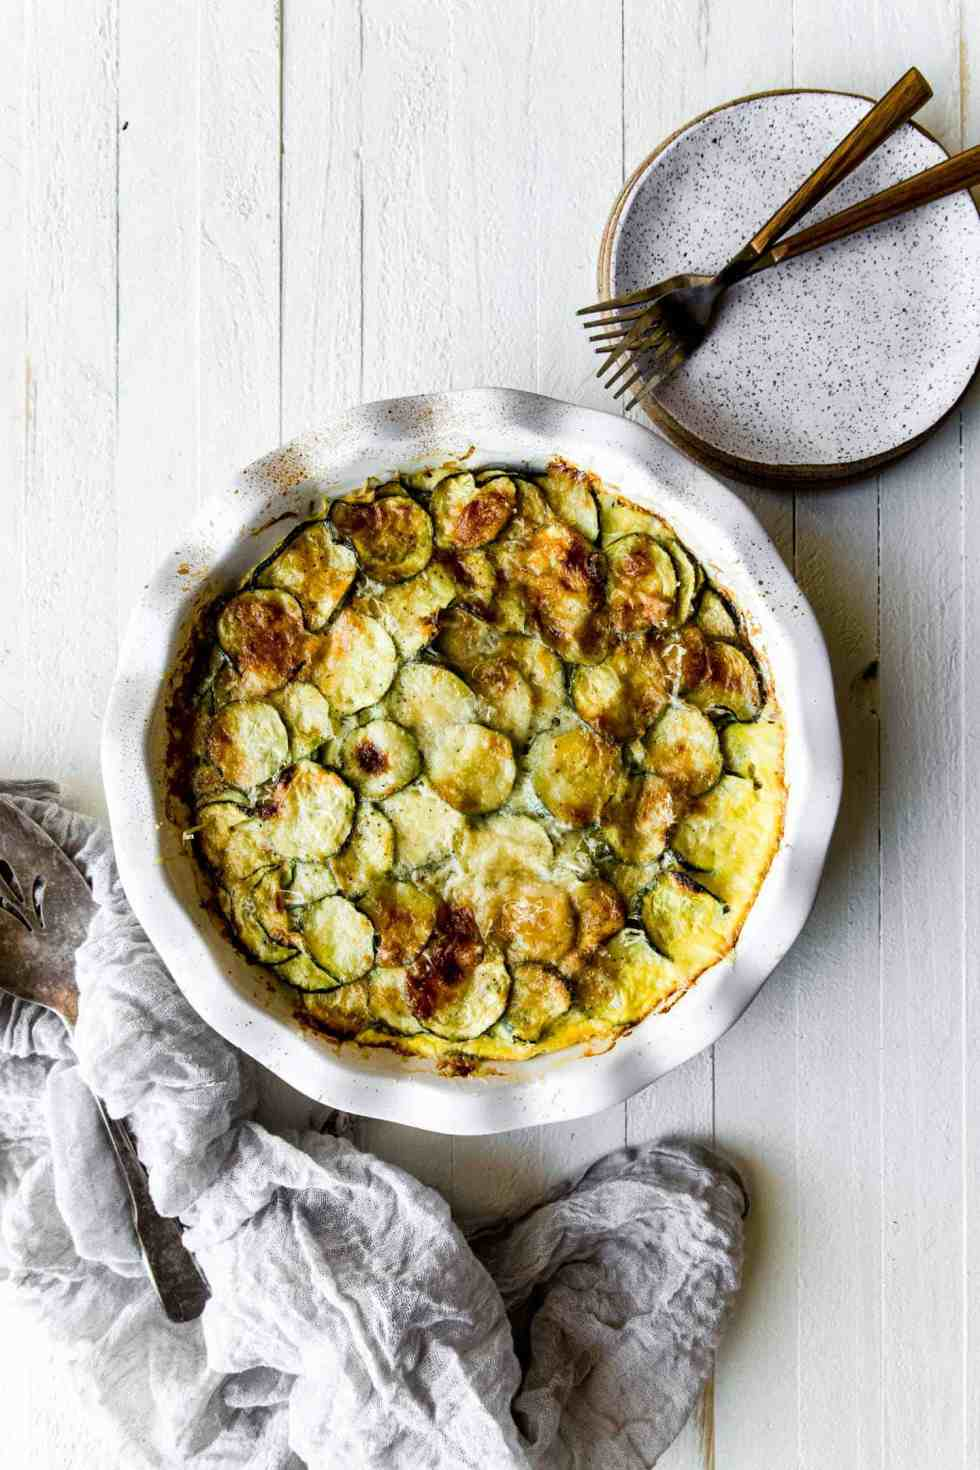 zucchini casserole in a white pan with a napkin and plates on the side